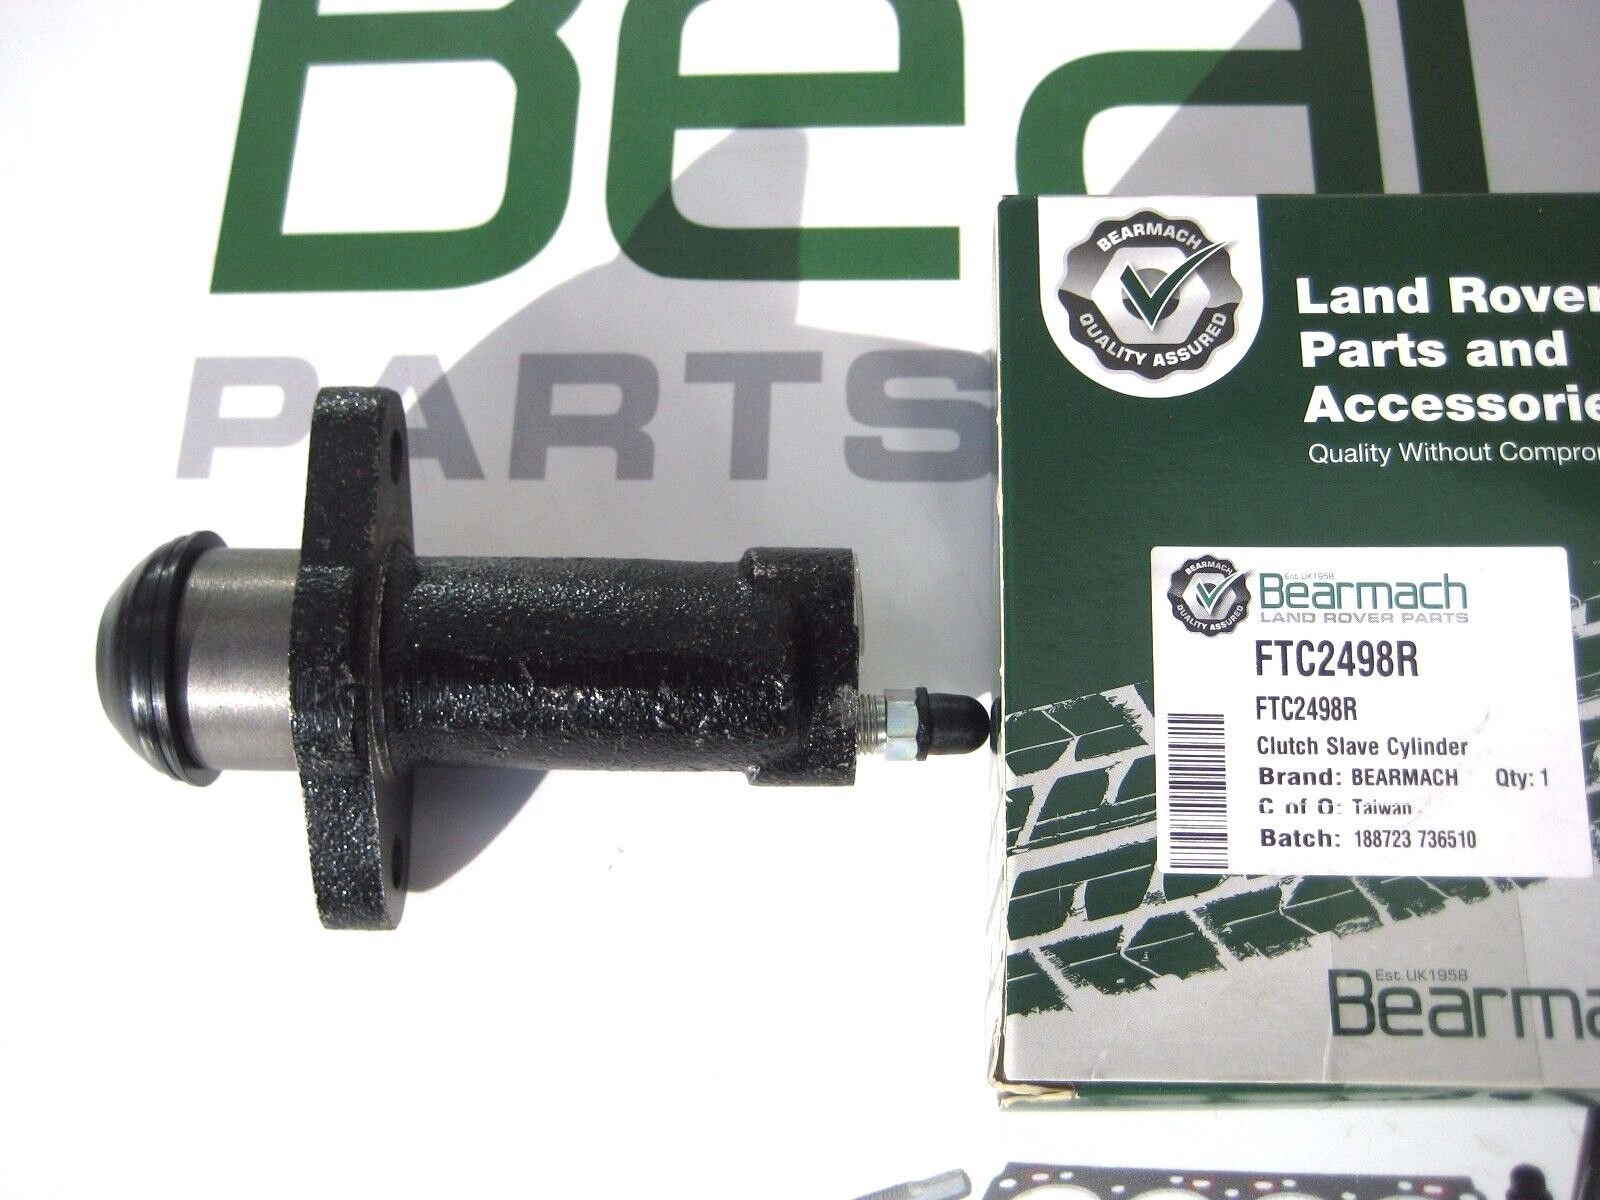 200tdi Clutch Slave Cylinder with LT77 Gearbox FTC2498R Land Rover Defender 90